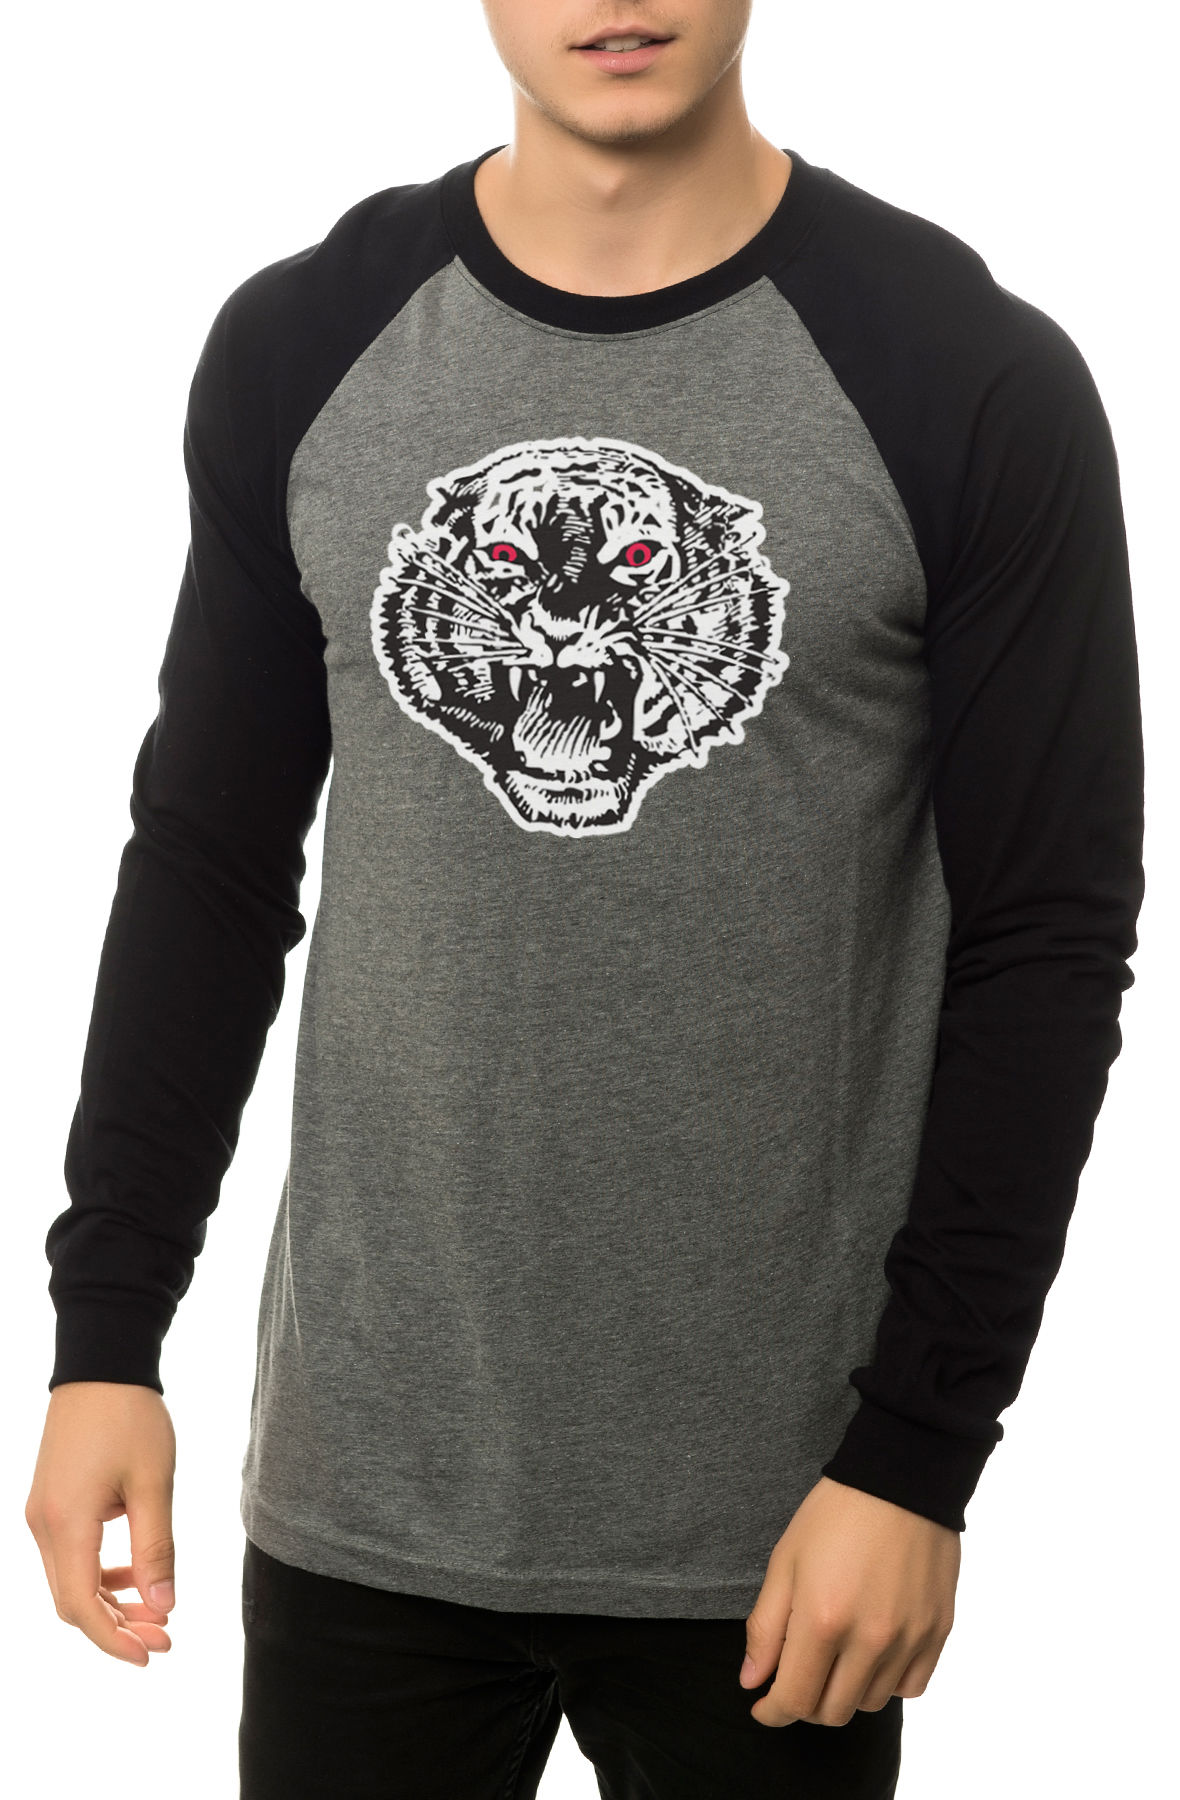 Image of The Mascot Raglan in Heather Grey and Black (Black Sleeves)